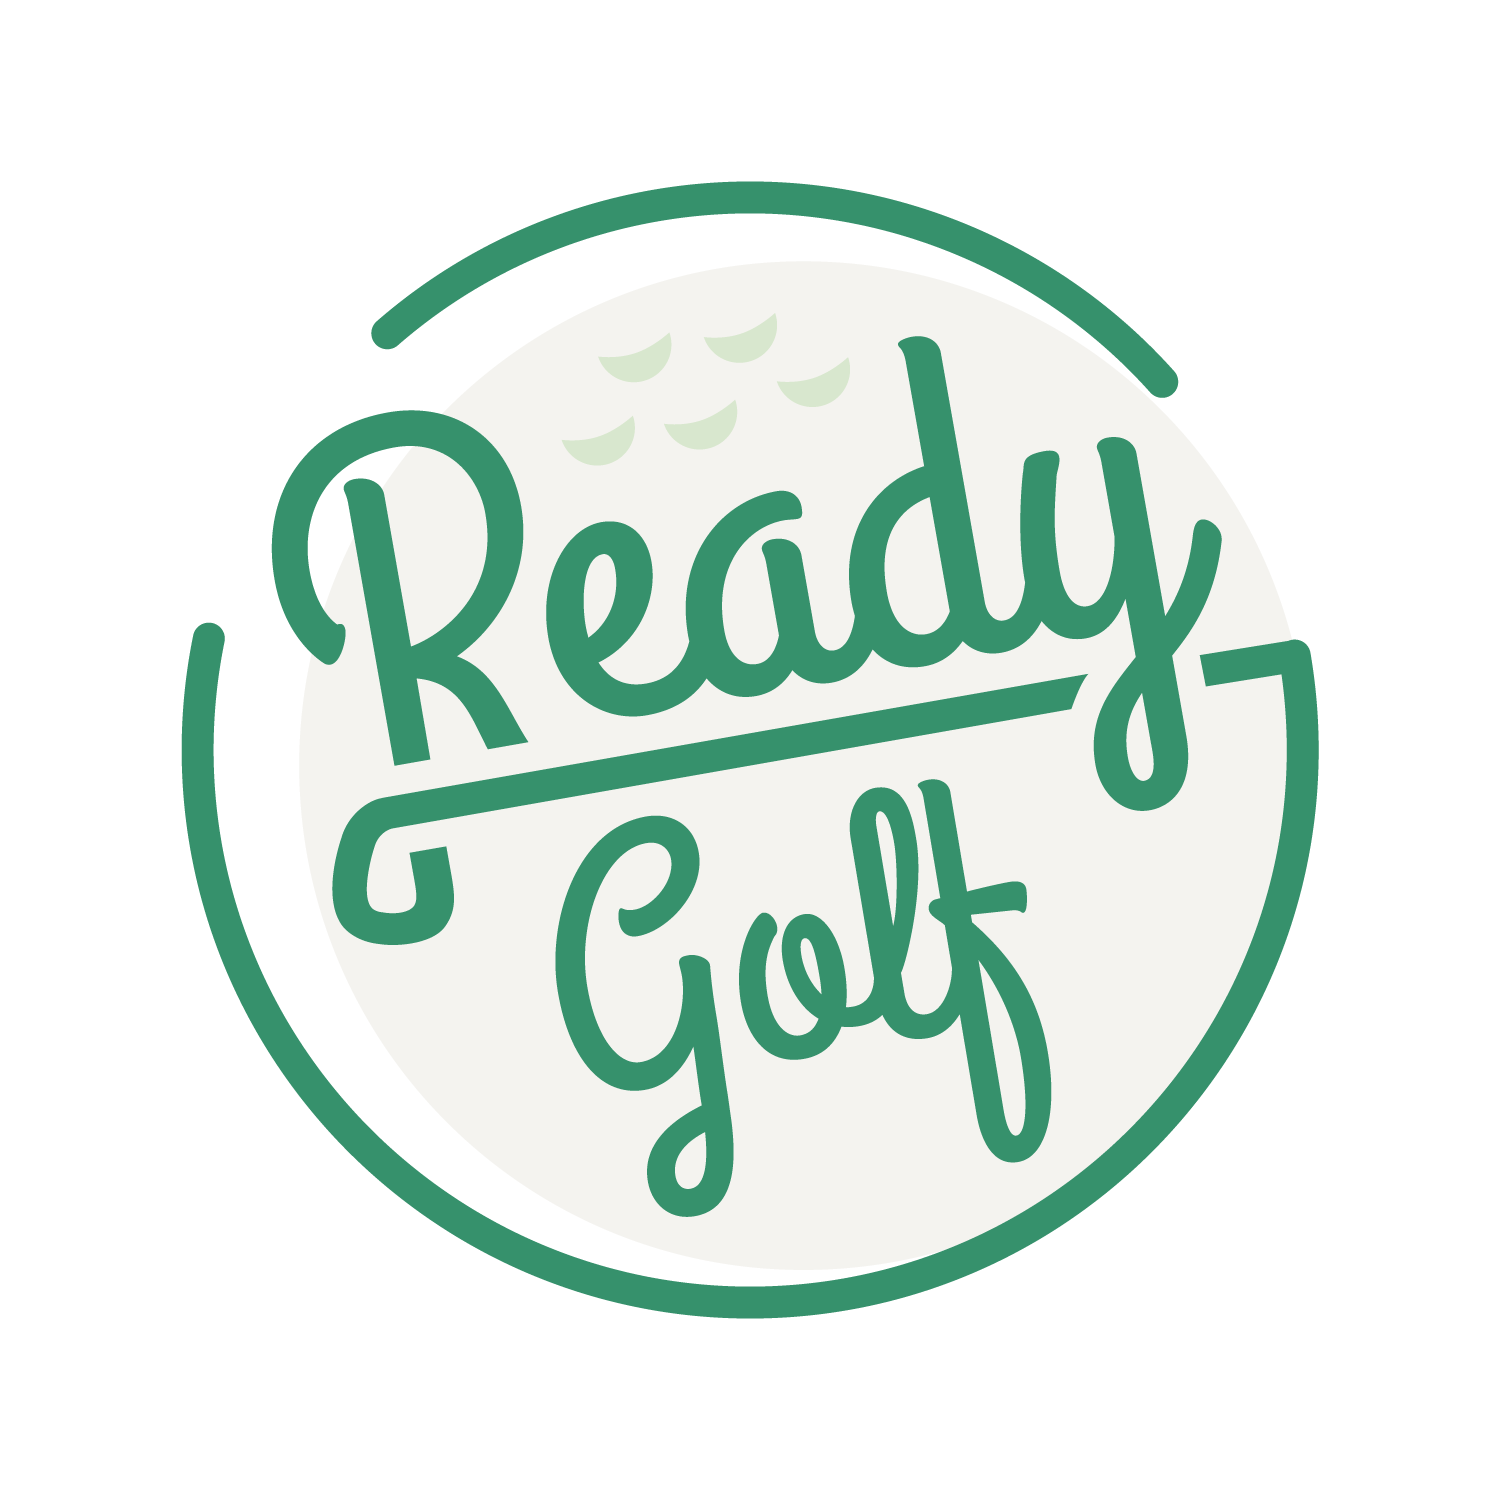 Ready Golf Podcast